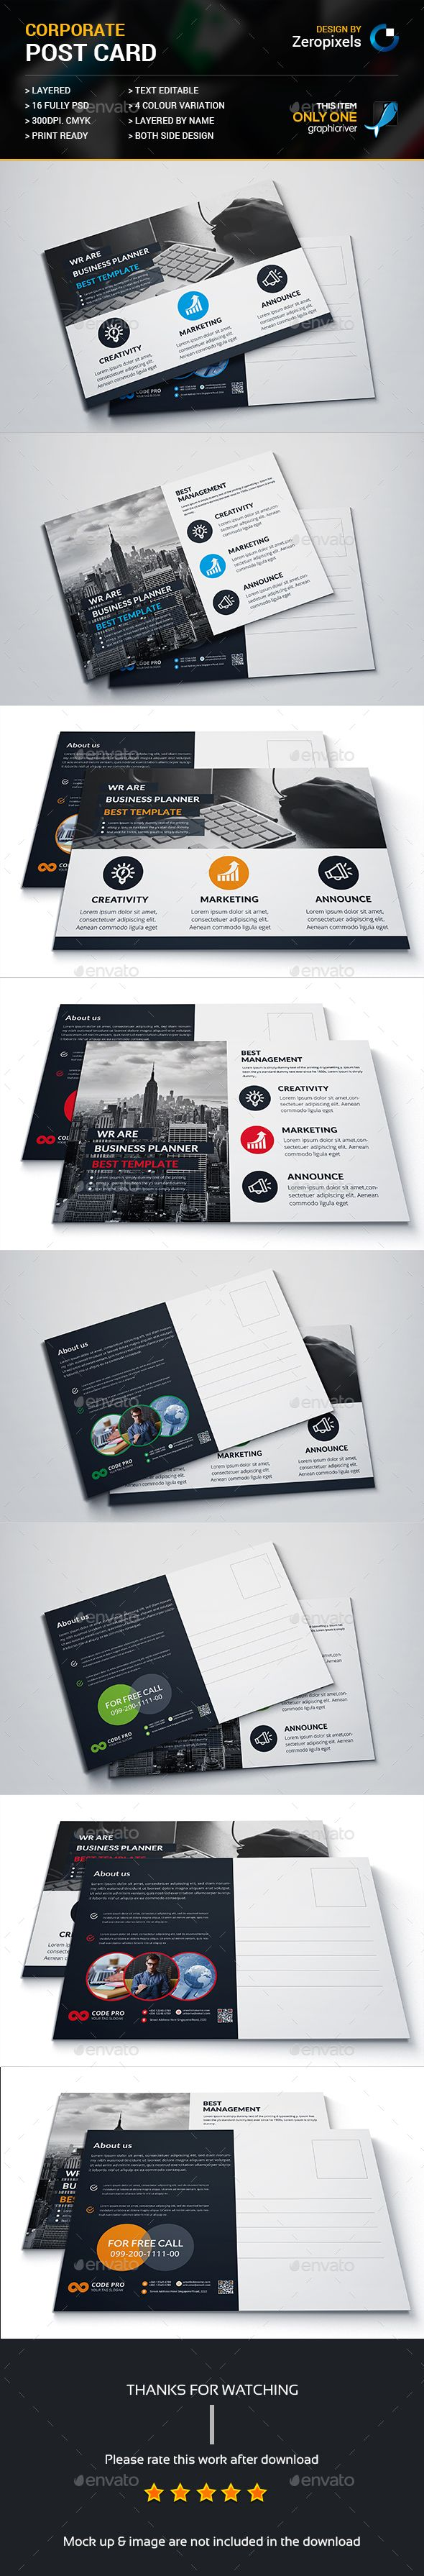 Best 16 Direct Mail ideas on Pinterest | Postcard design, Direct ...